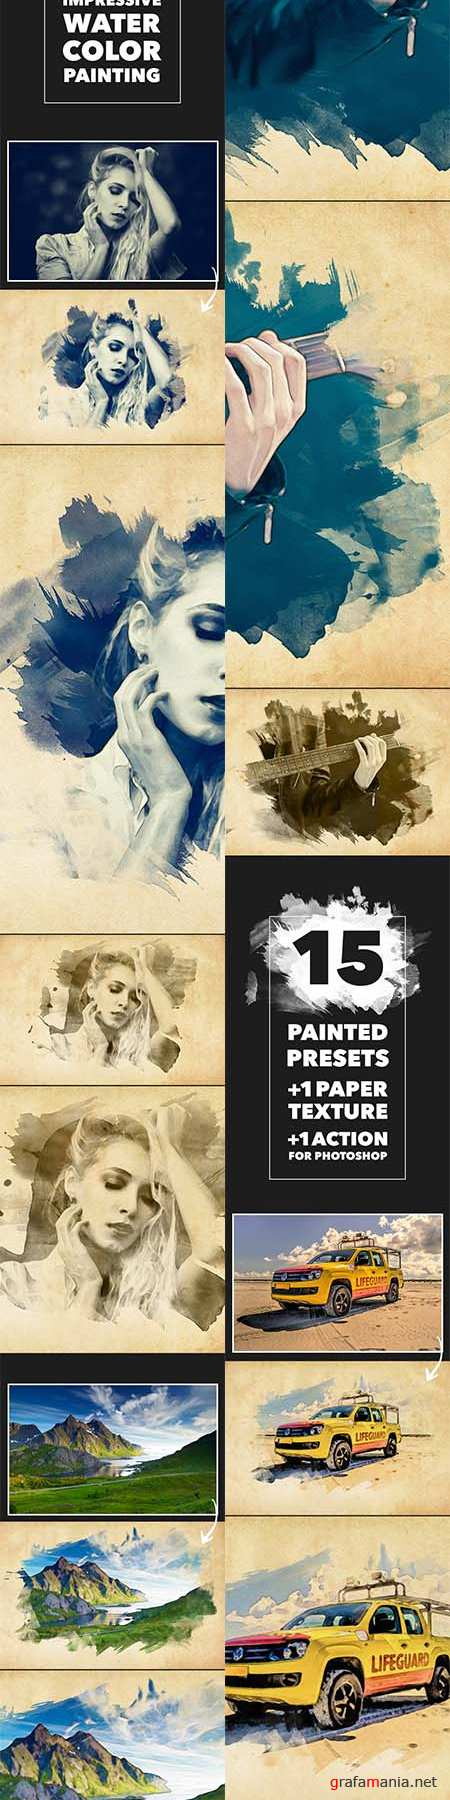 GraphicRiver - Vibrant Watercolor Effect - Photoshop Action 11869640